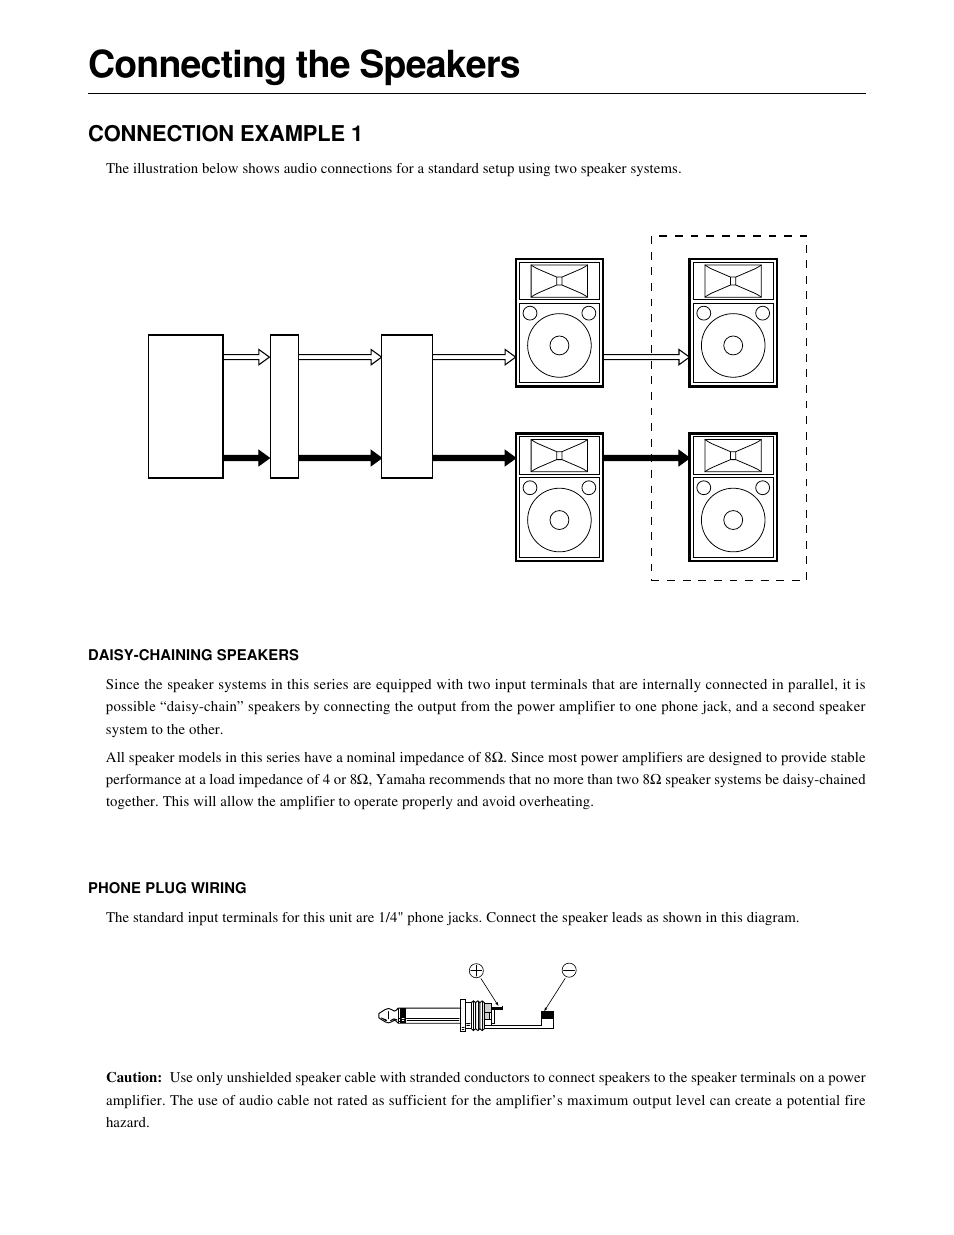 medium resolution of connecting the speakers connection example 1 yamaha s115iva oak user manual page